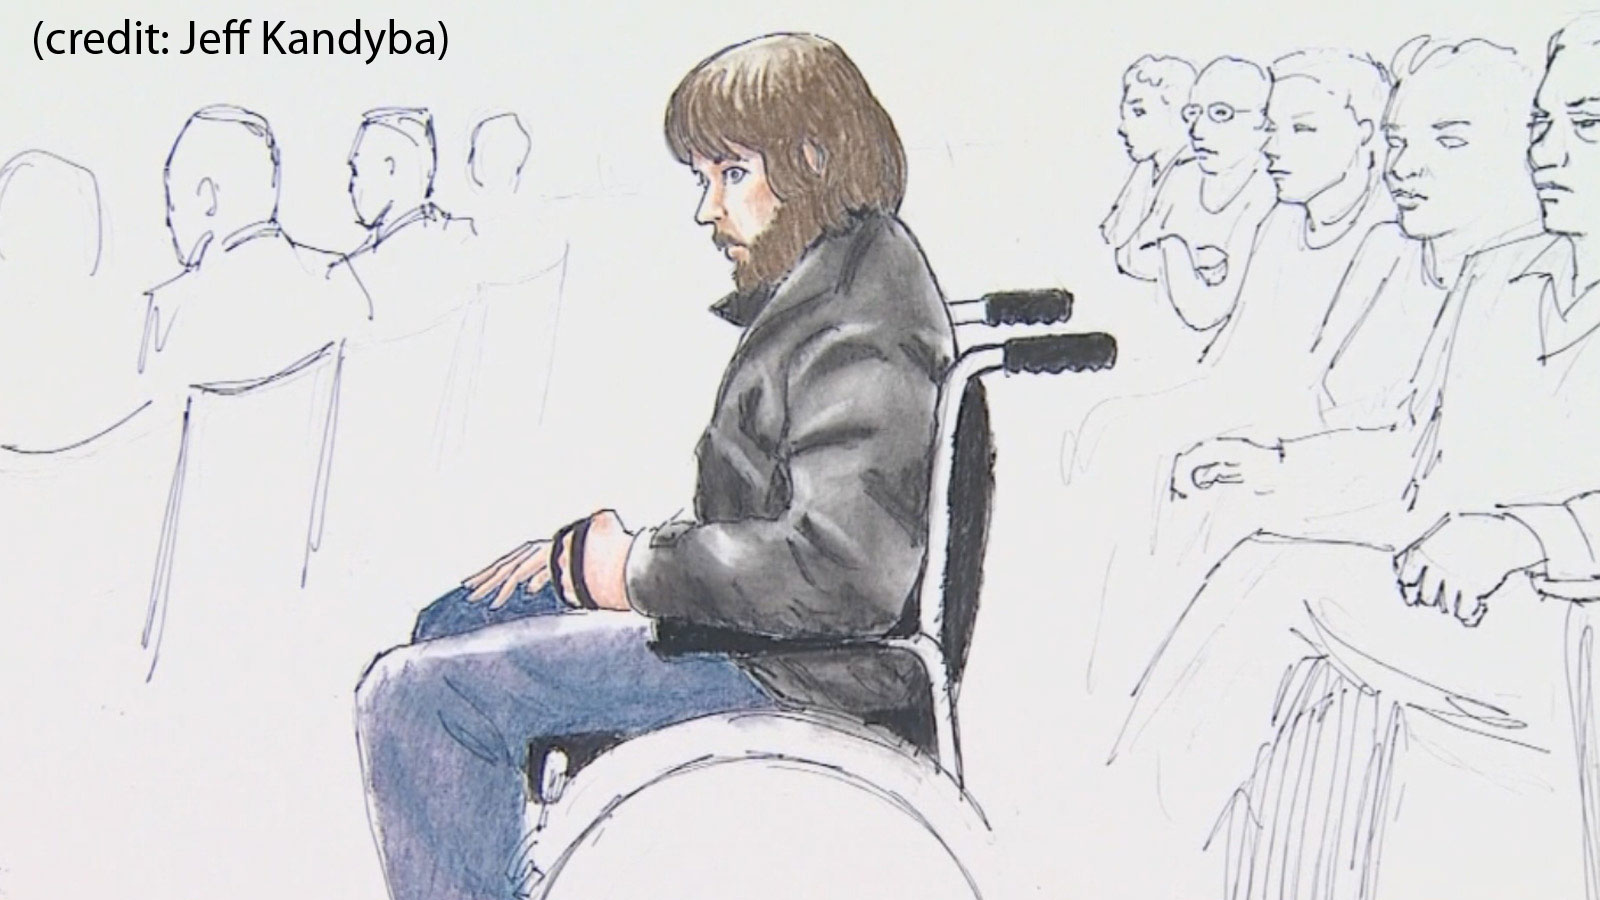 A sketch of Caleb Medley before he testified in court during the Aurora theater shooting trial (credit: Jeff Kandyba)